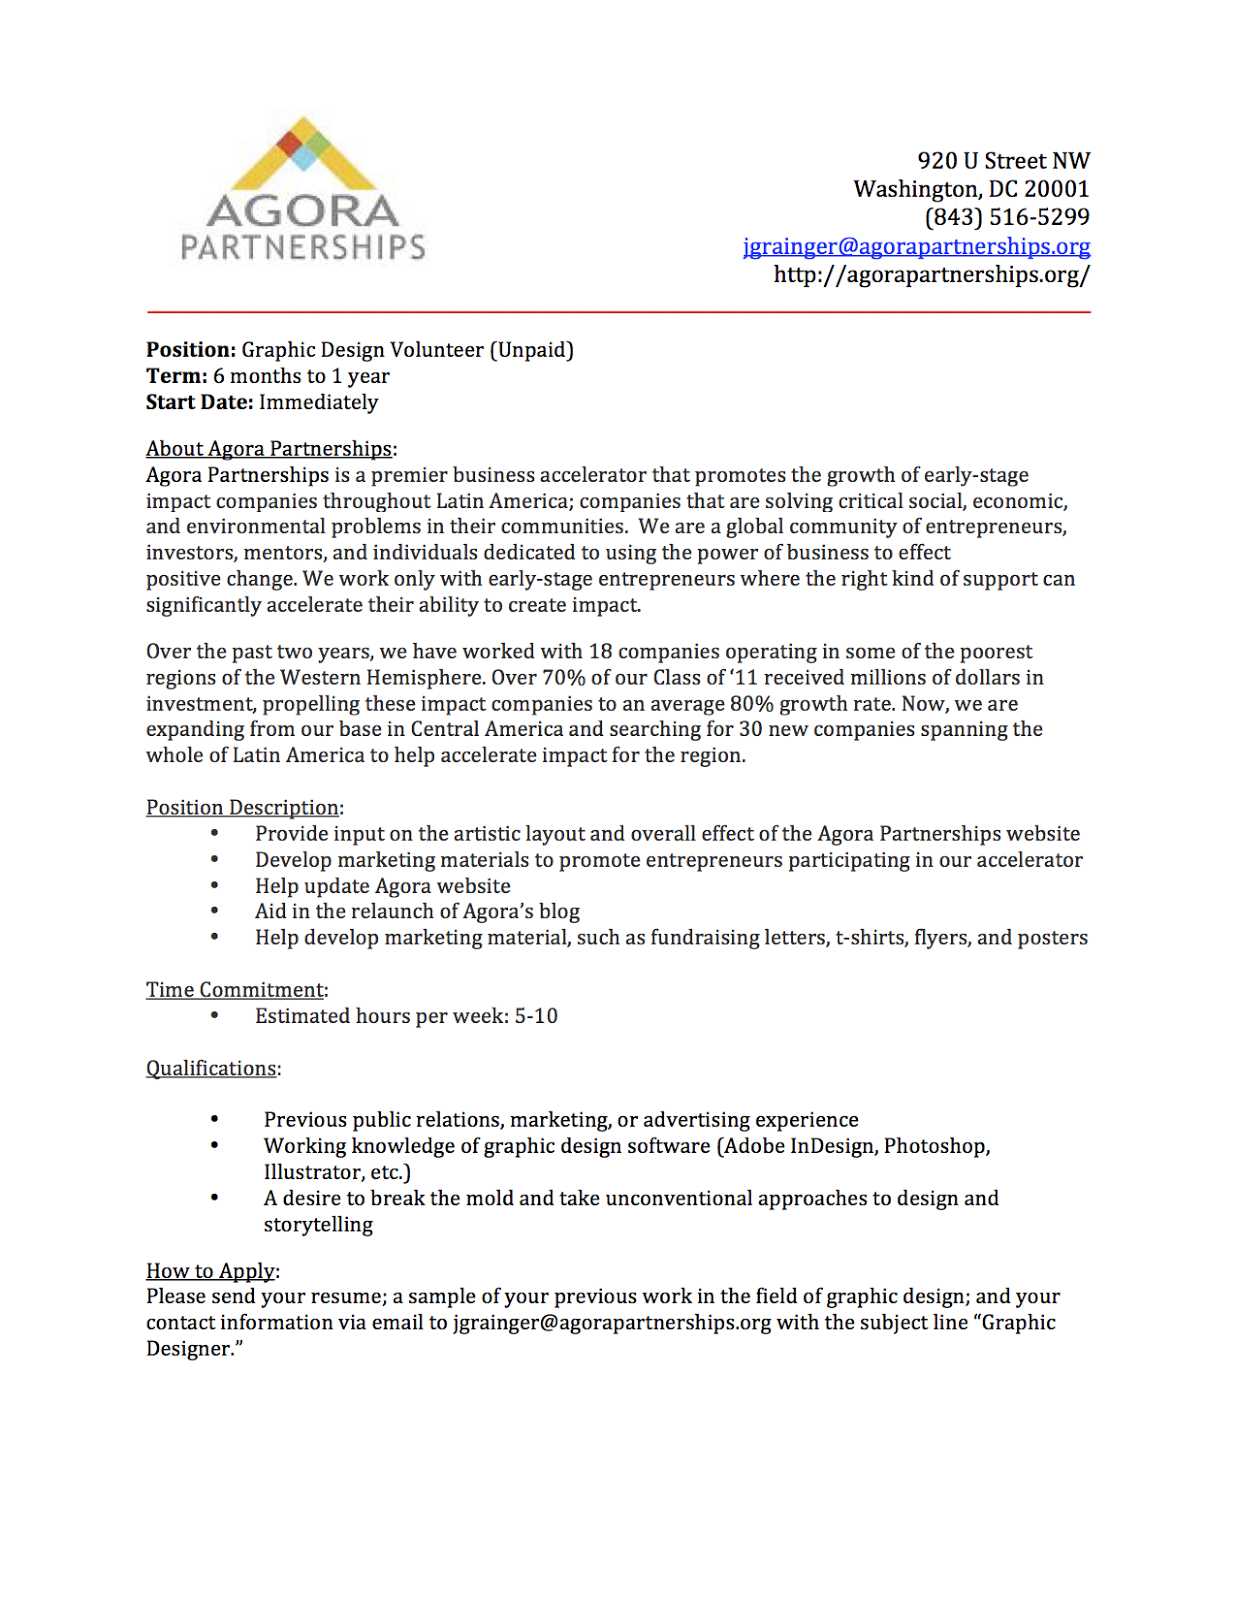 Cover letter senior graphic designer: Best custom paper writing